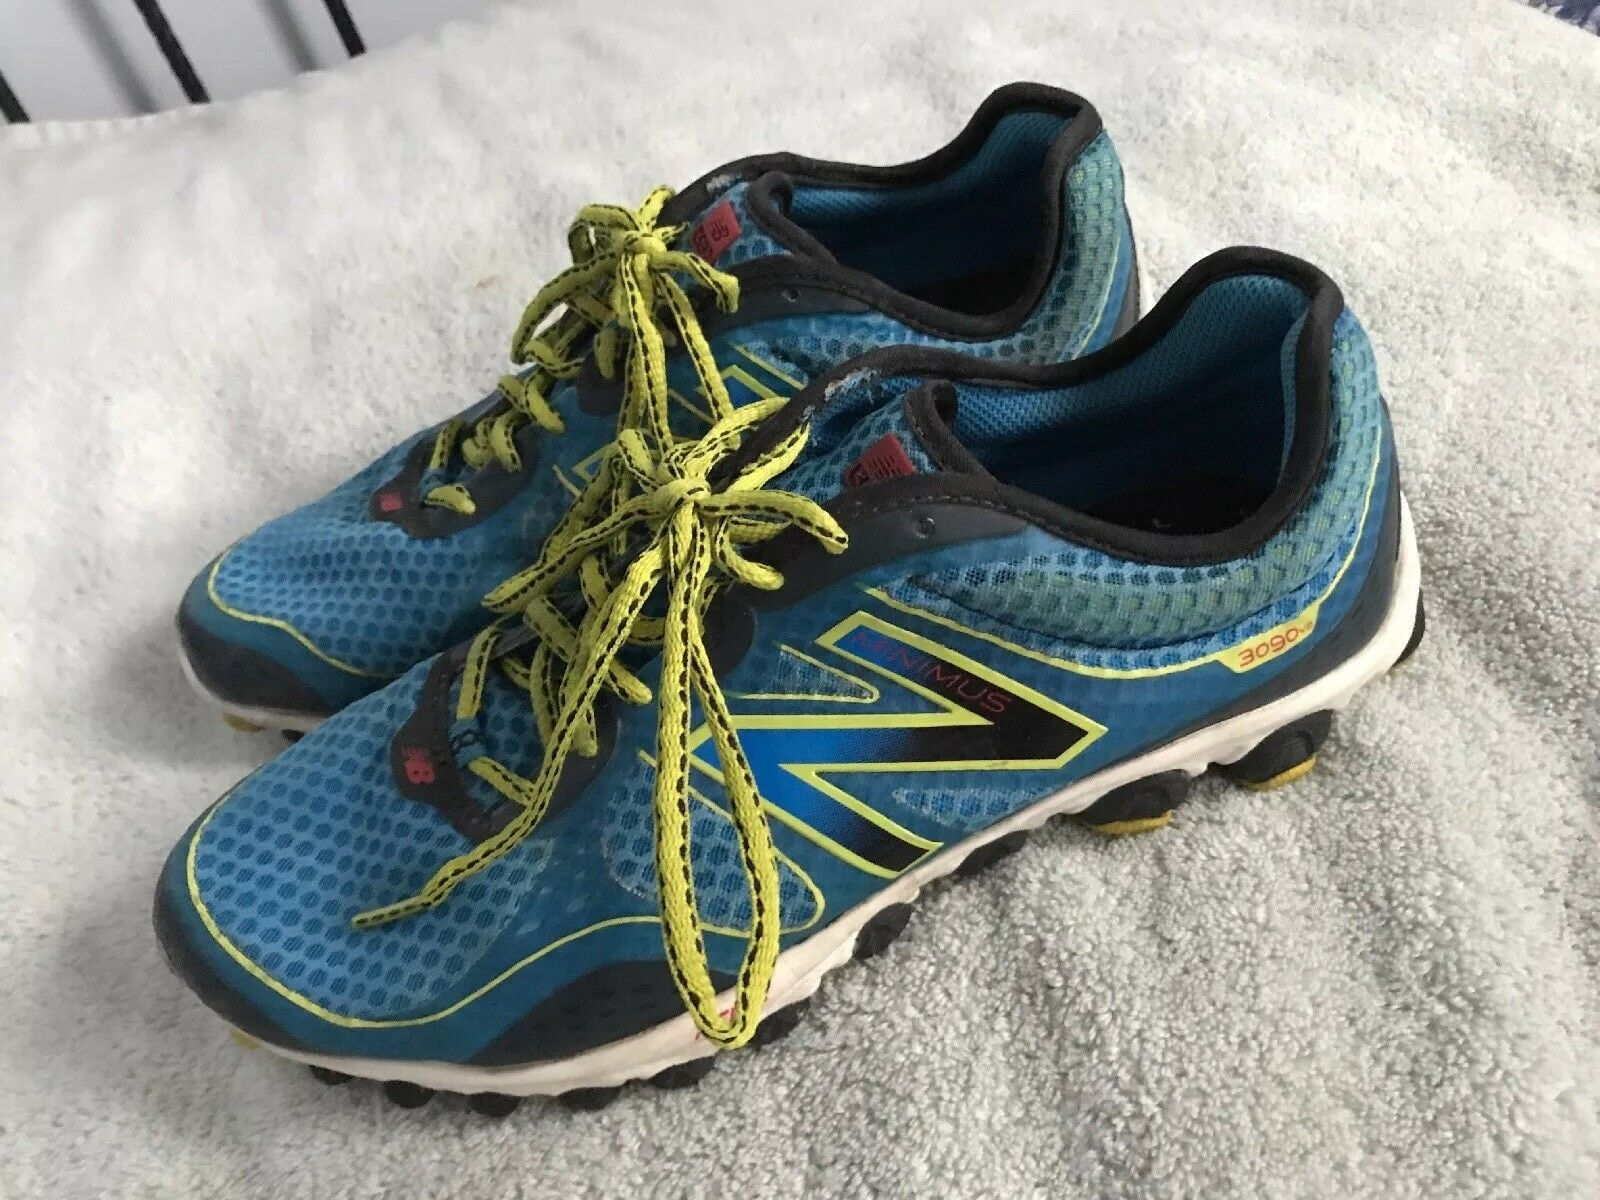 MENS NEW BALANCE MINIMUS 3090 V2 RUNNING SHOES SIZE 10.5 blueE SC8